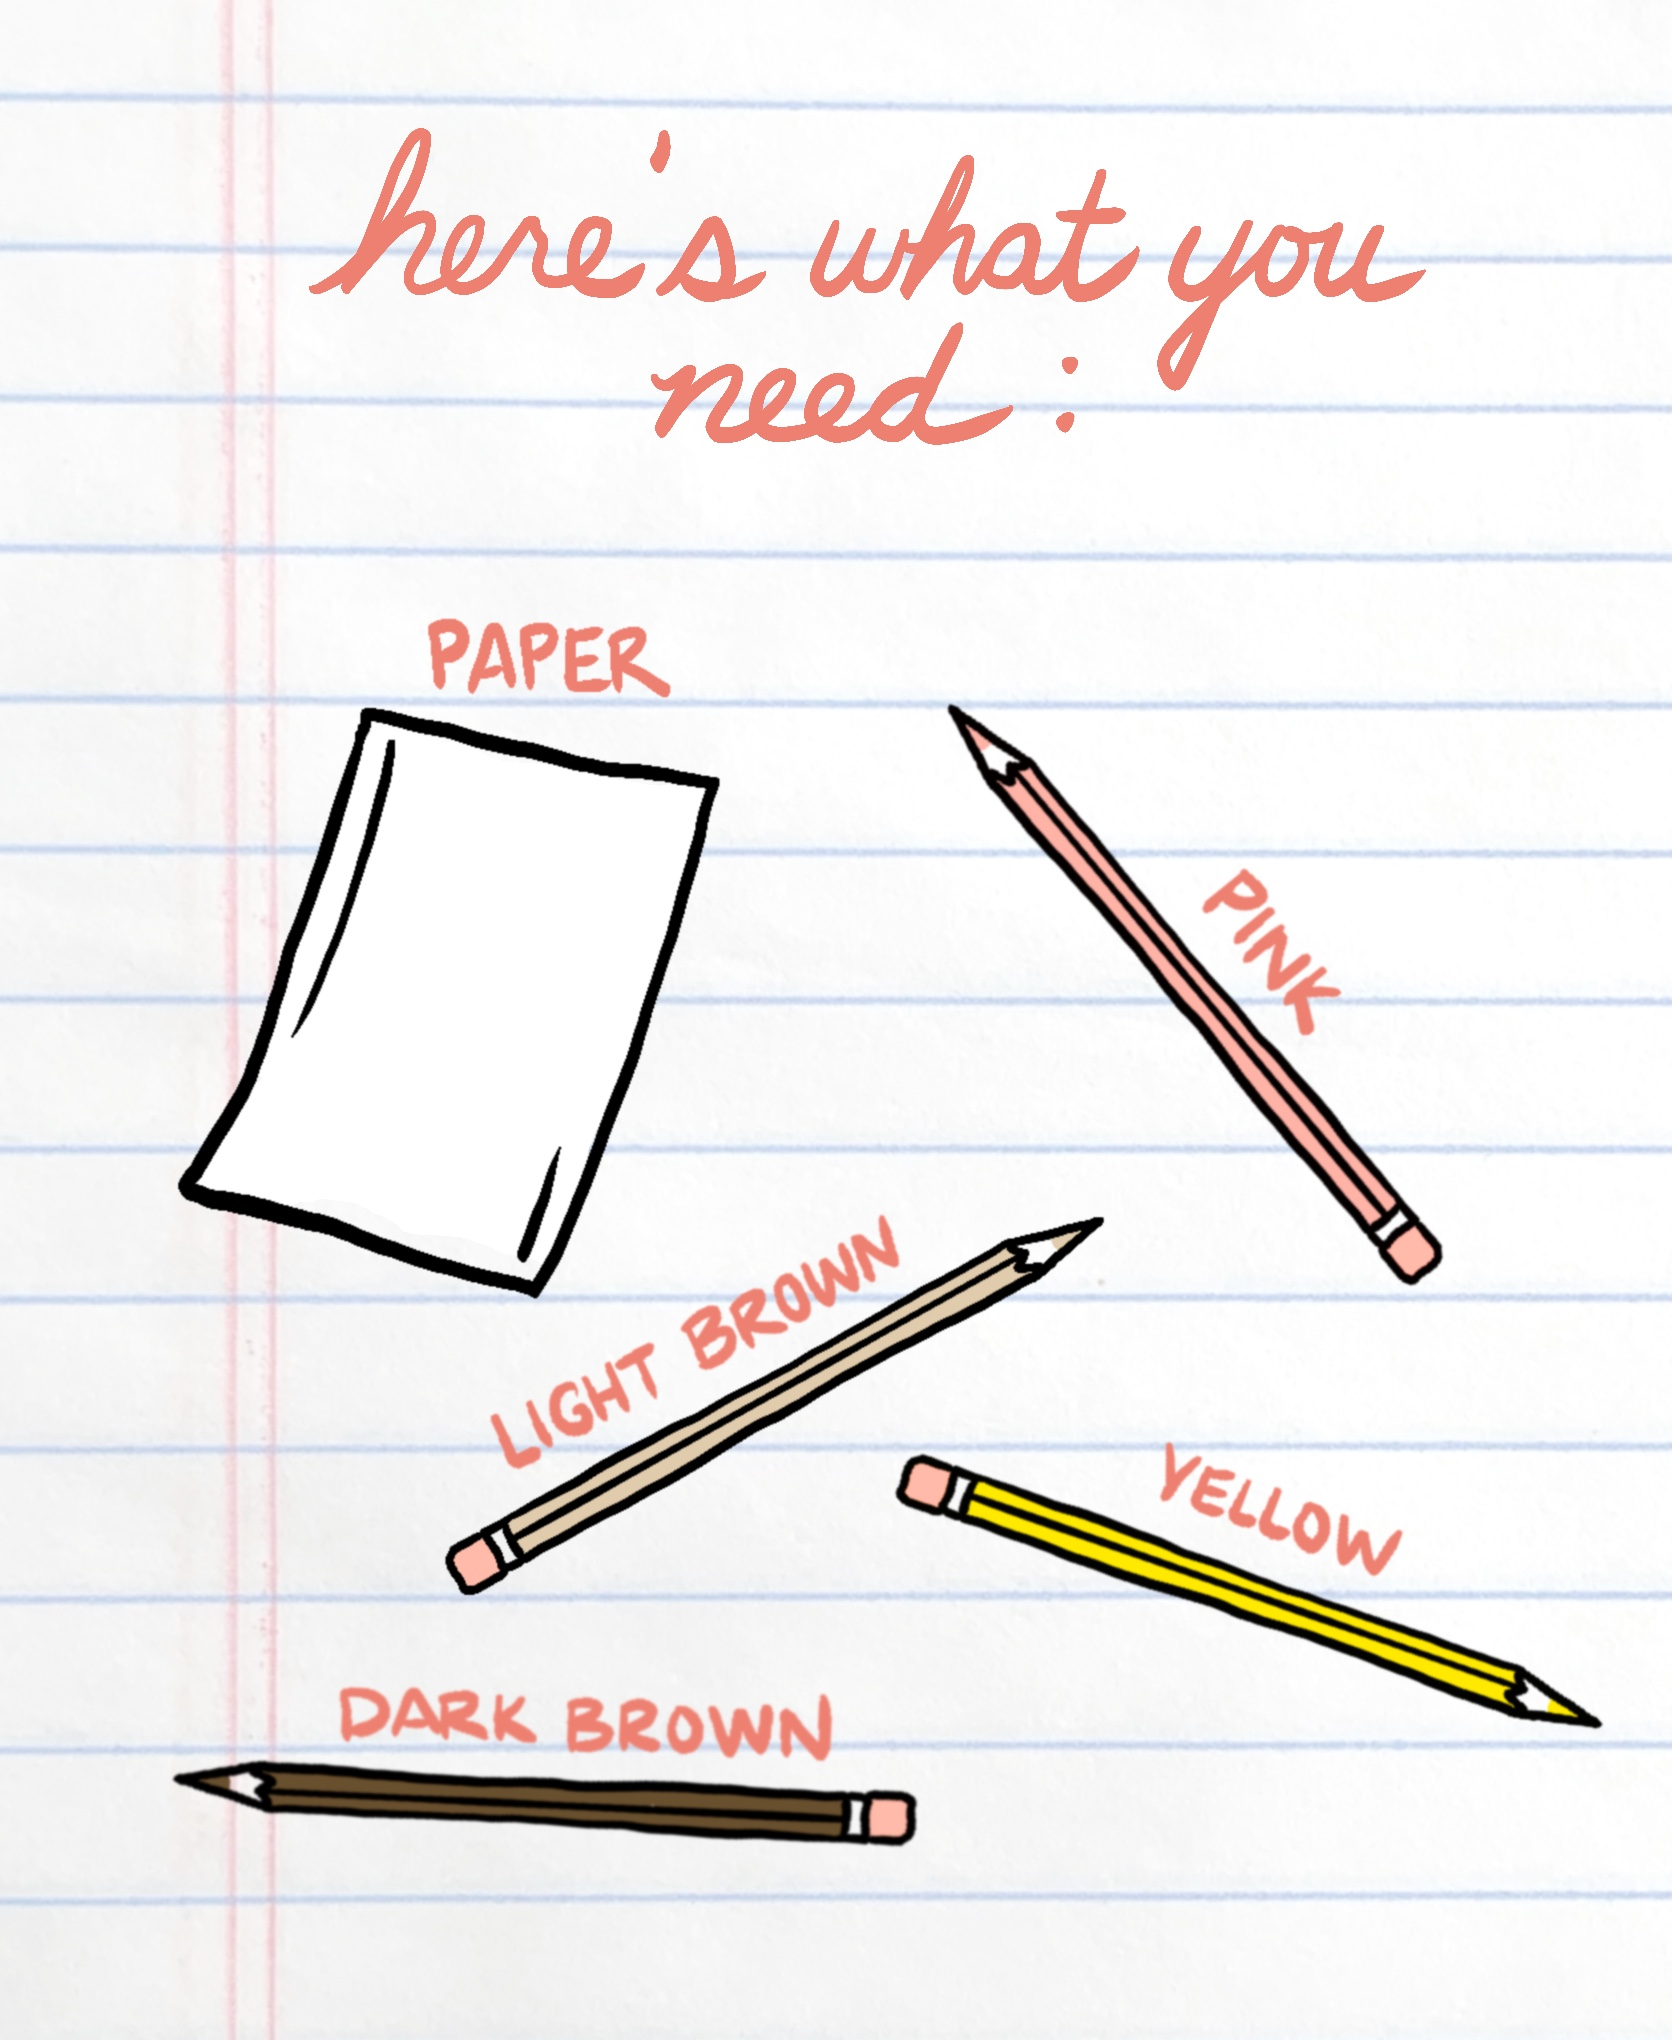 Here's what you need: a piece of paper, a pink colored pencil, a light brown colored pencil, a yellow colored pencil, and a dark brown colored pencil. / Image: Phil Armstrong // Published: 4.10.20